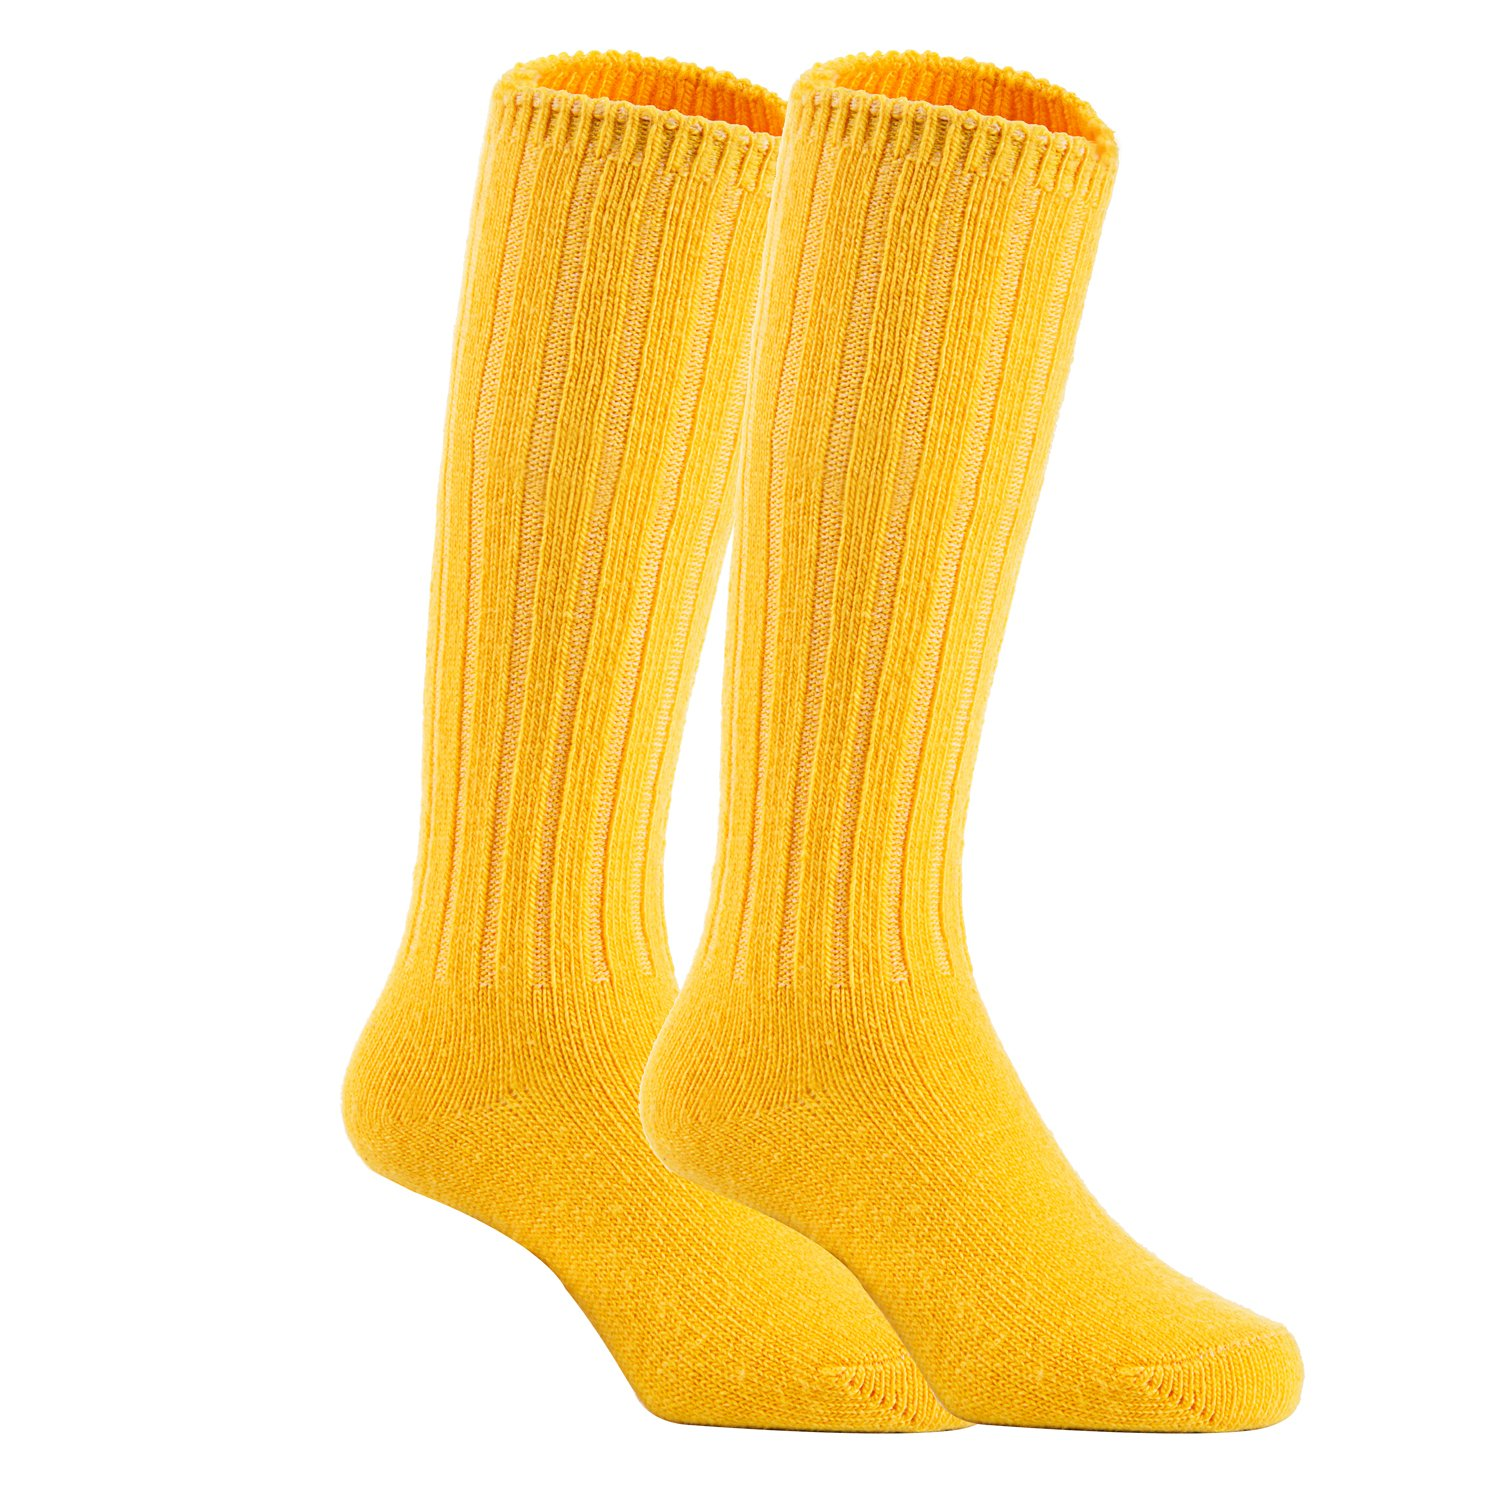 Lian LifeStyle Unisex Baby Children 2 Pairs Knee High Wool Blend Boot Socks Size 2-4Y (Yellow)